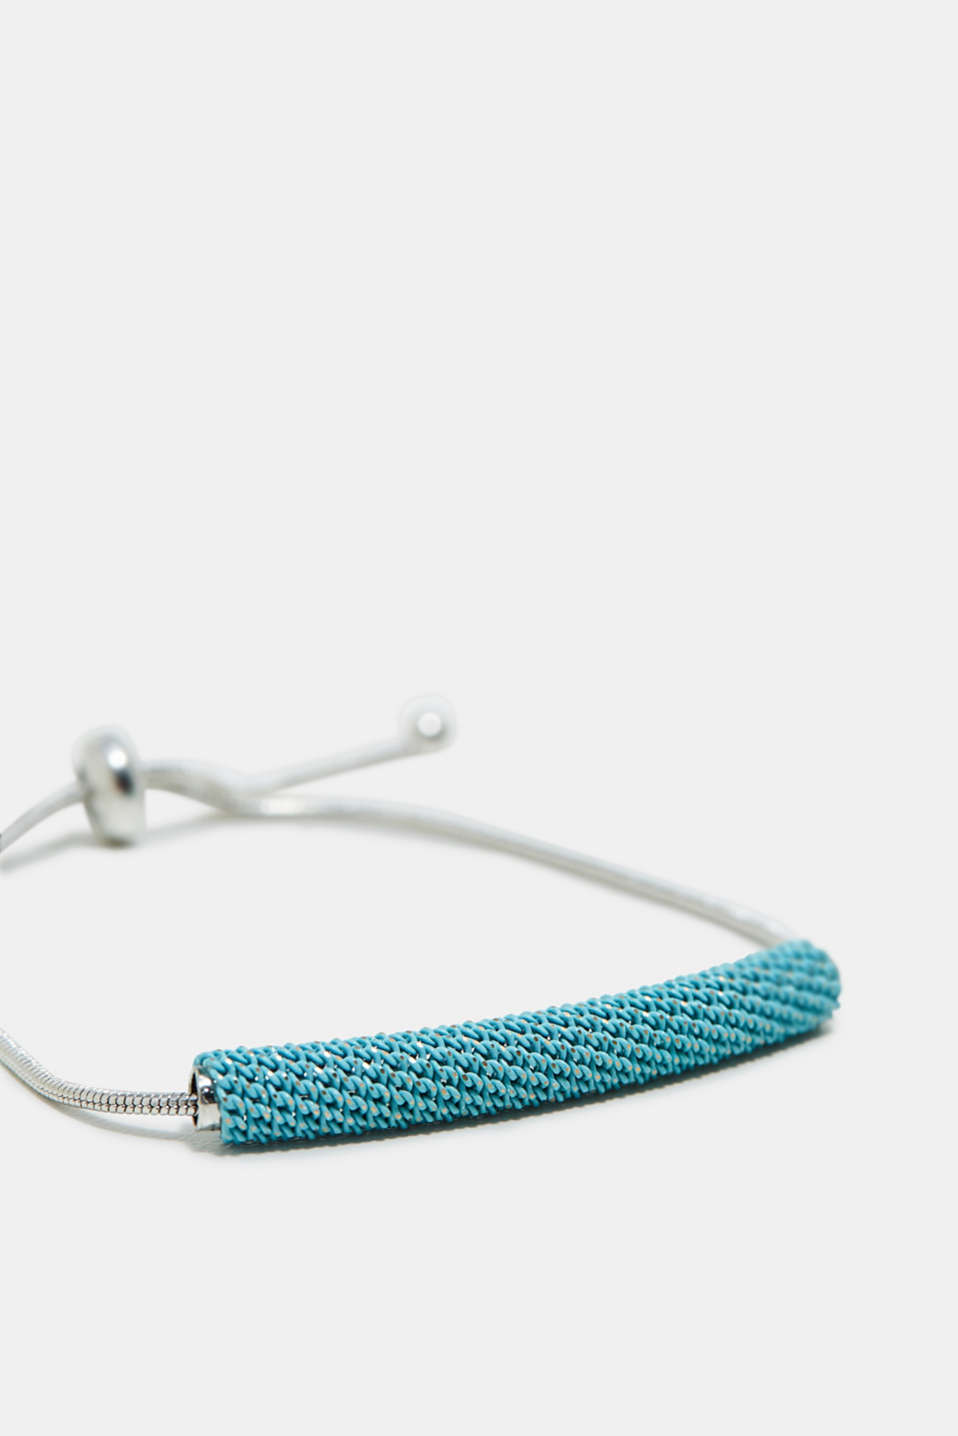 Adjustable tubular bracelet + bar beads